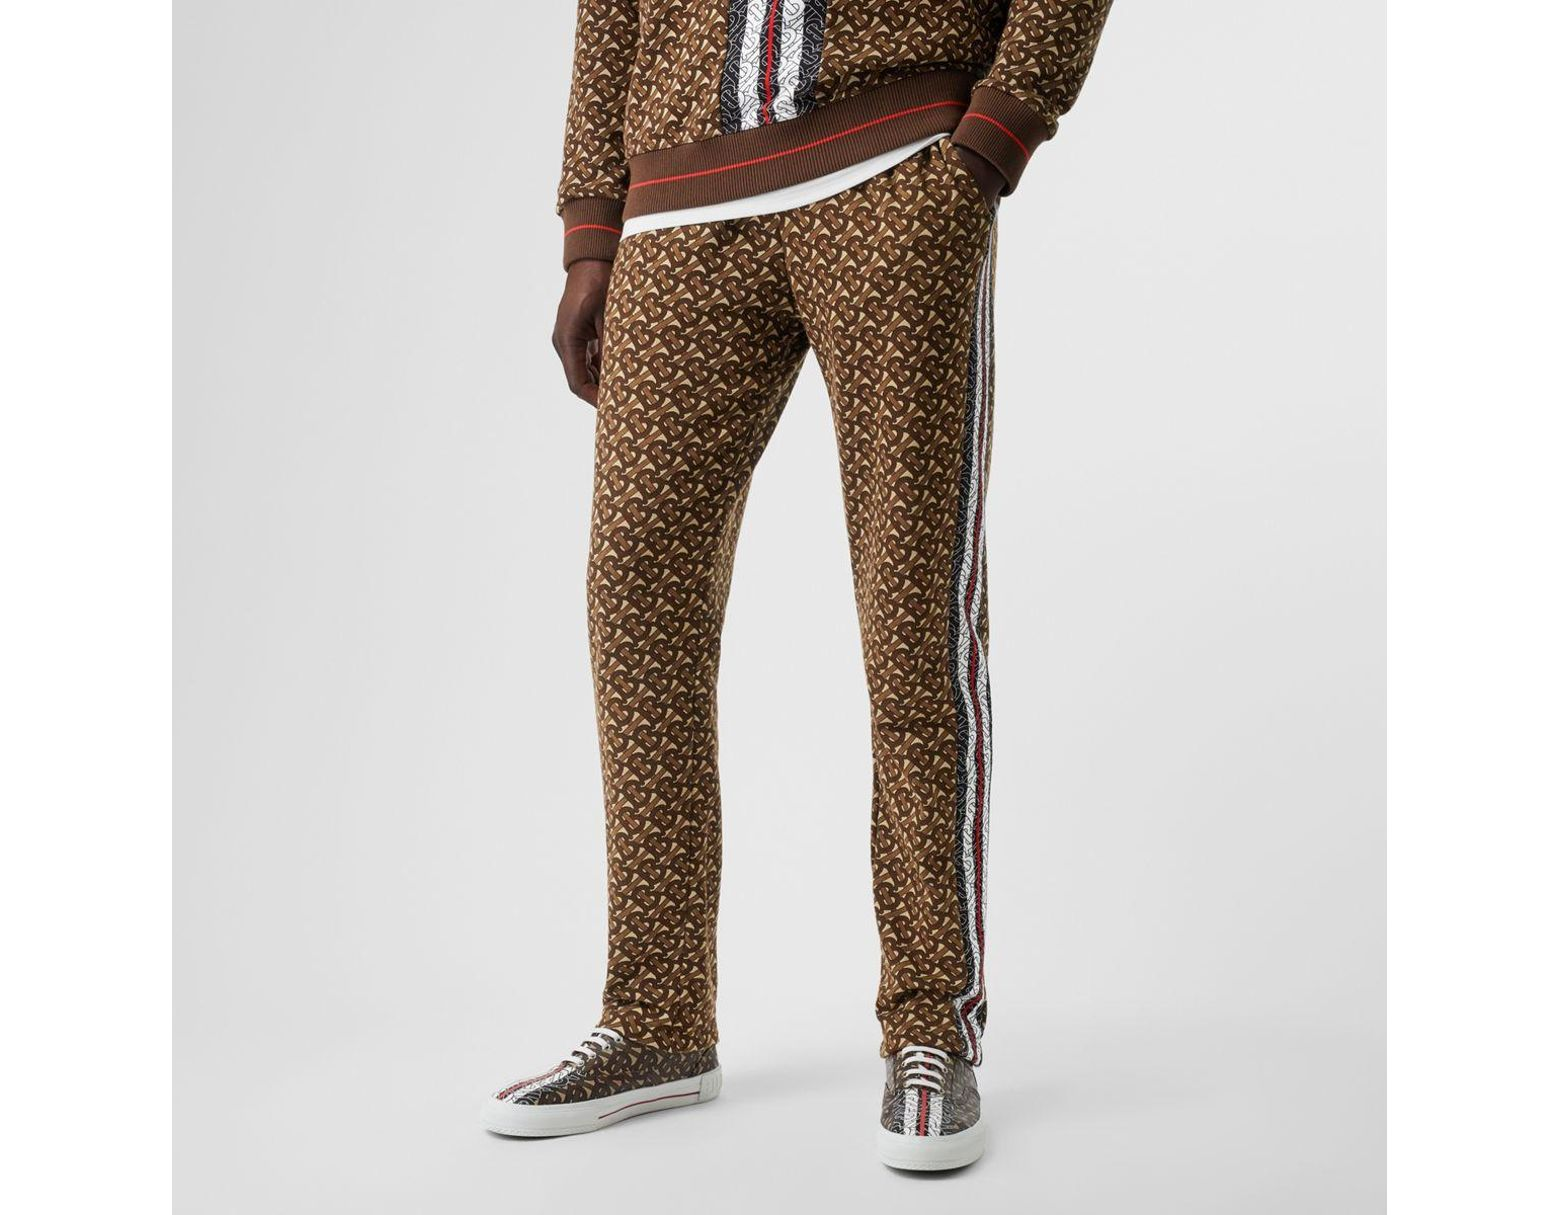 7ddb0c8d59 Burberry Monogram Stripe Print Cotton Trackpants in Brown for Men - Lyst